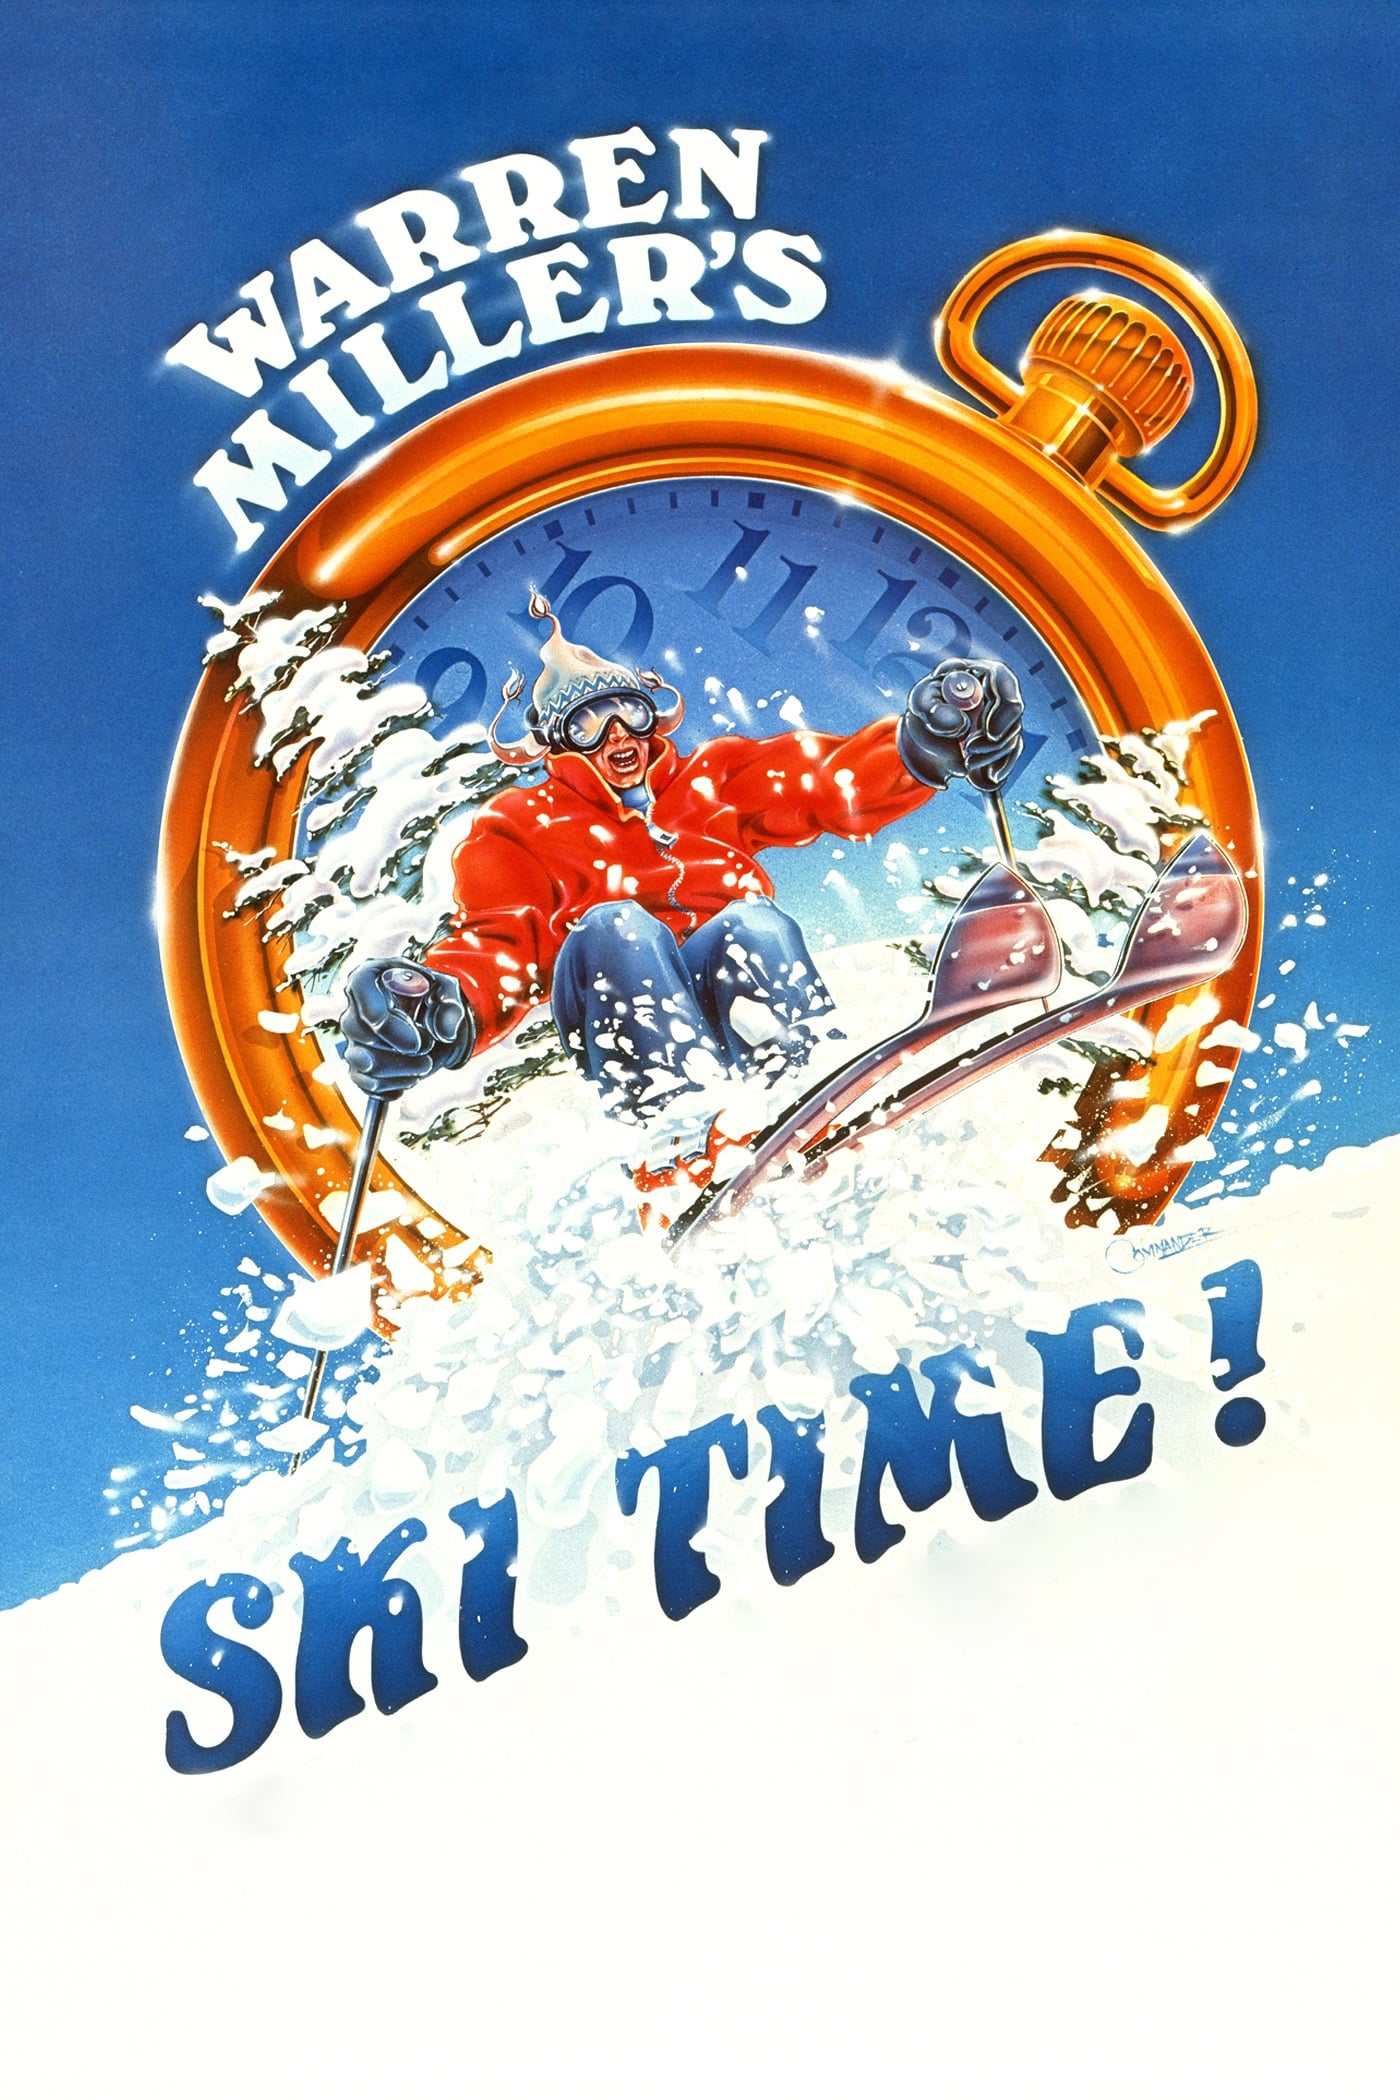 Warren Miller's Ski Time on FREECABLE TV